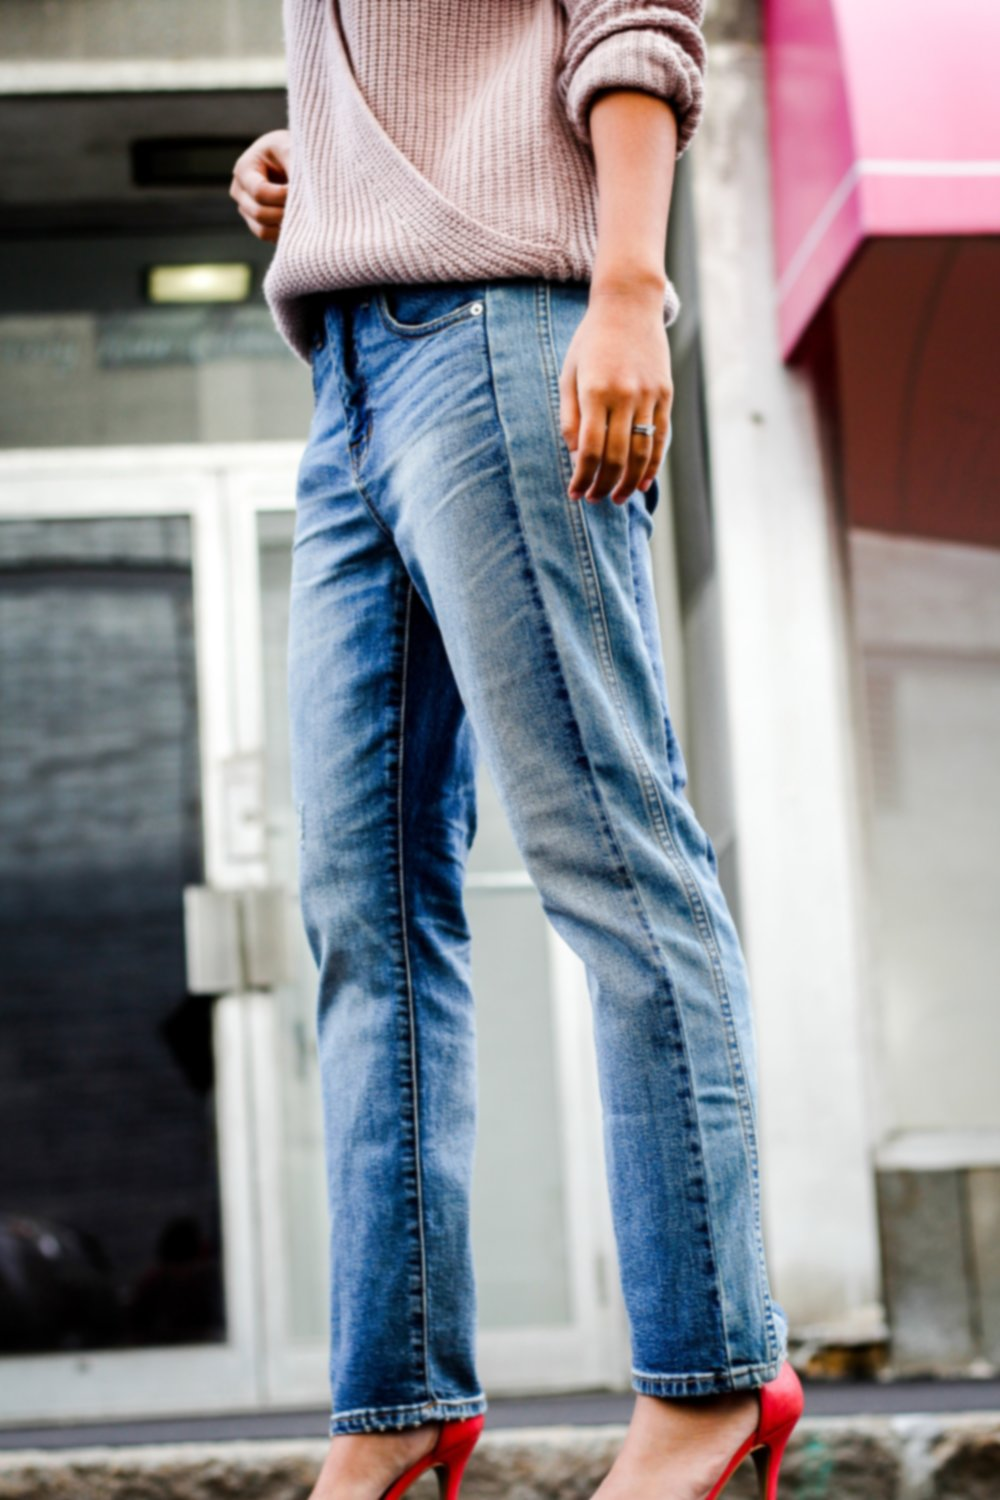 Madewell - These pair of  jeans are my favorite. It's the highlight of the ensemble. I mean, how cute is the two-toned pieced detail?Madewell is the most consistent brand in my wardrobe. They are always up to date with trends and the quality of their jeans are worthy.Side note: I'm so glad today's fashion is heading beyond the skinny jean. Slowly, I'm trading them in for straight, wide, and flared. Options are always great, especially if you're looking for variety in your looks.*cruiser straight crop jeans: pieced edition